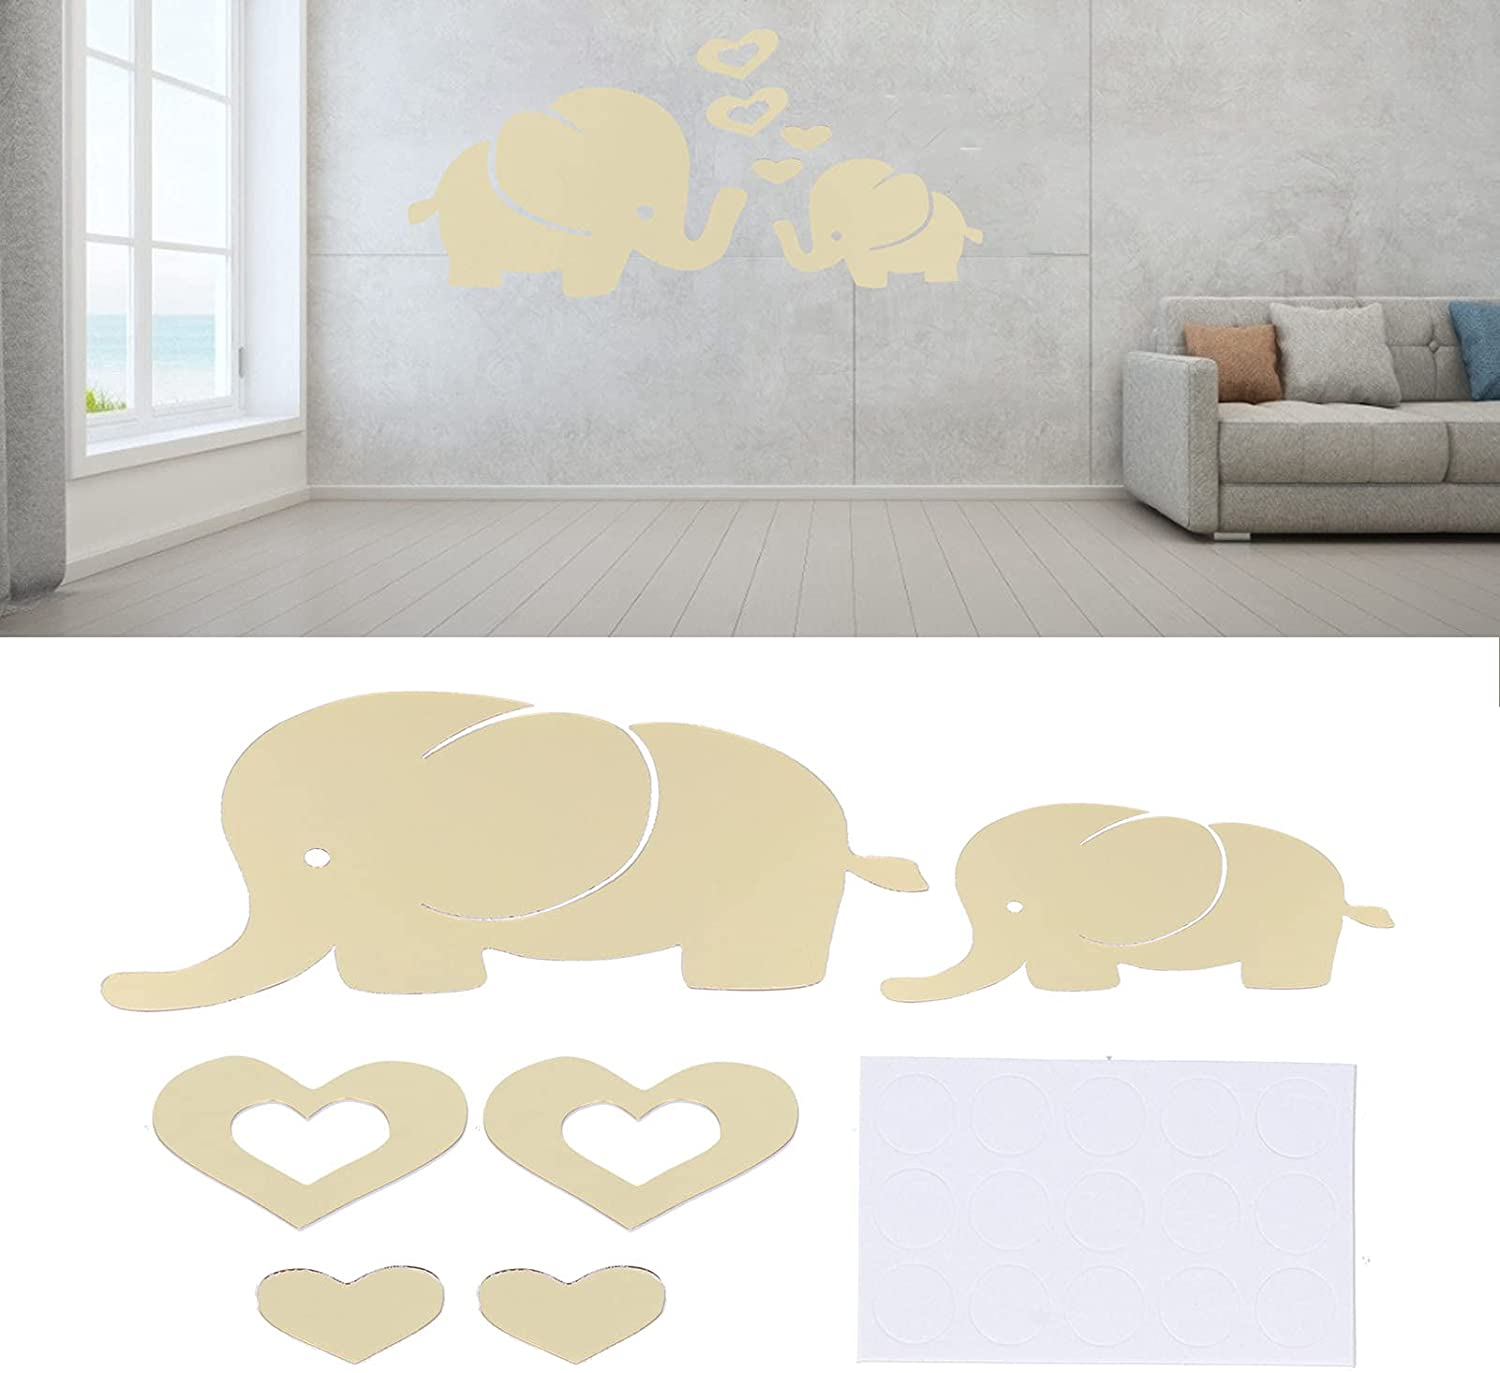 Elephant Family Wall Decal, Large Innovative Cartoon DIY Removable Hearts Kids Room Wall Stickers Art Beautiful Cute Mirror Waterproof Baby Nursery Wall Decor for Living Room, Kitchen(Golden)